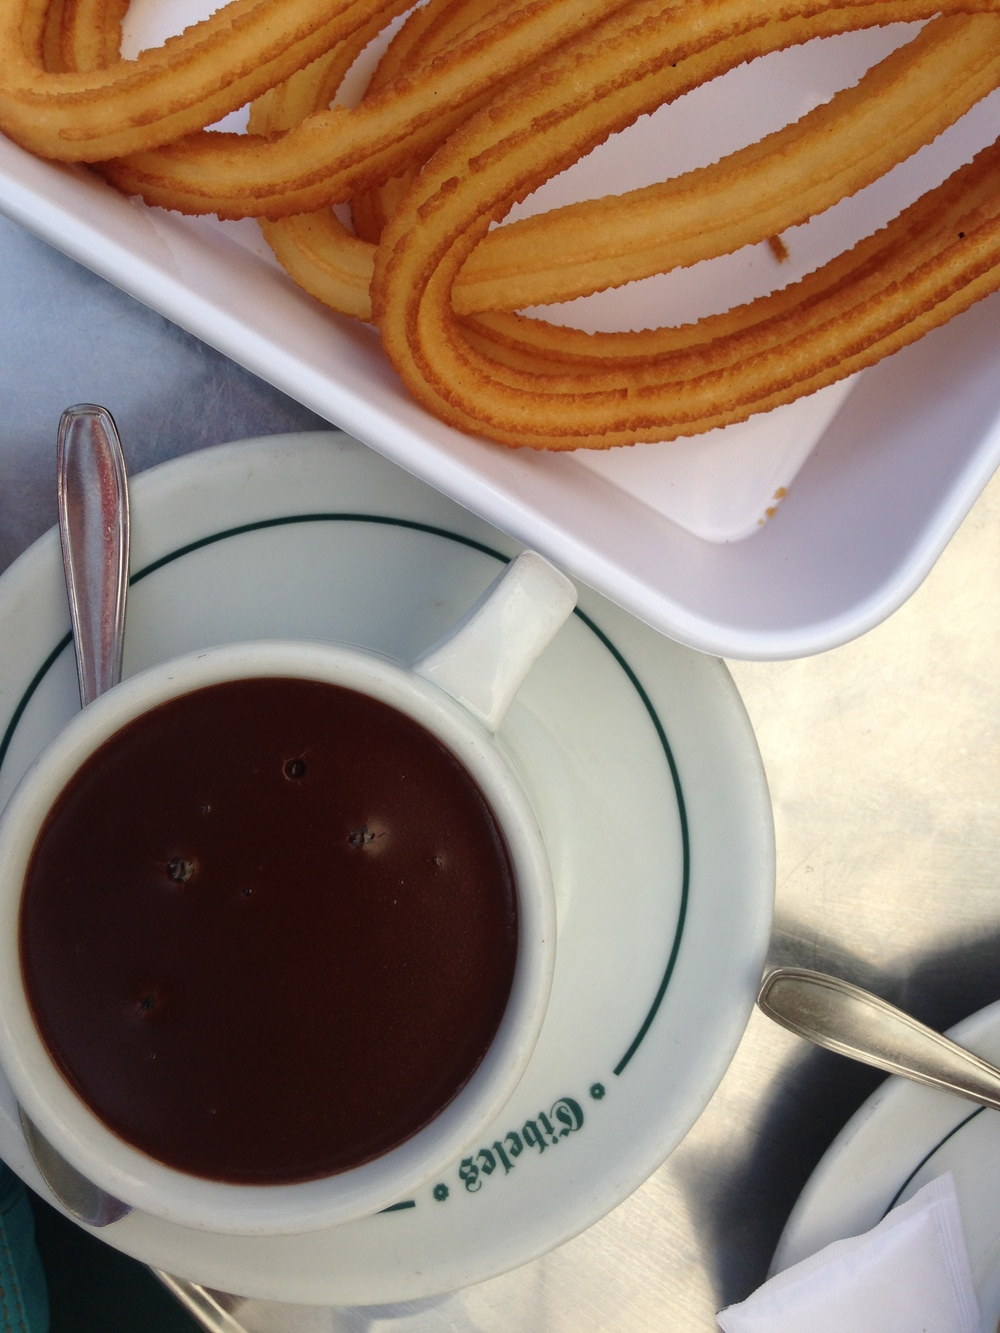 And finally, a photo of some churros. Mmmm, fried dough and chocolate.